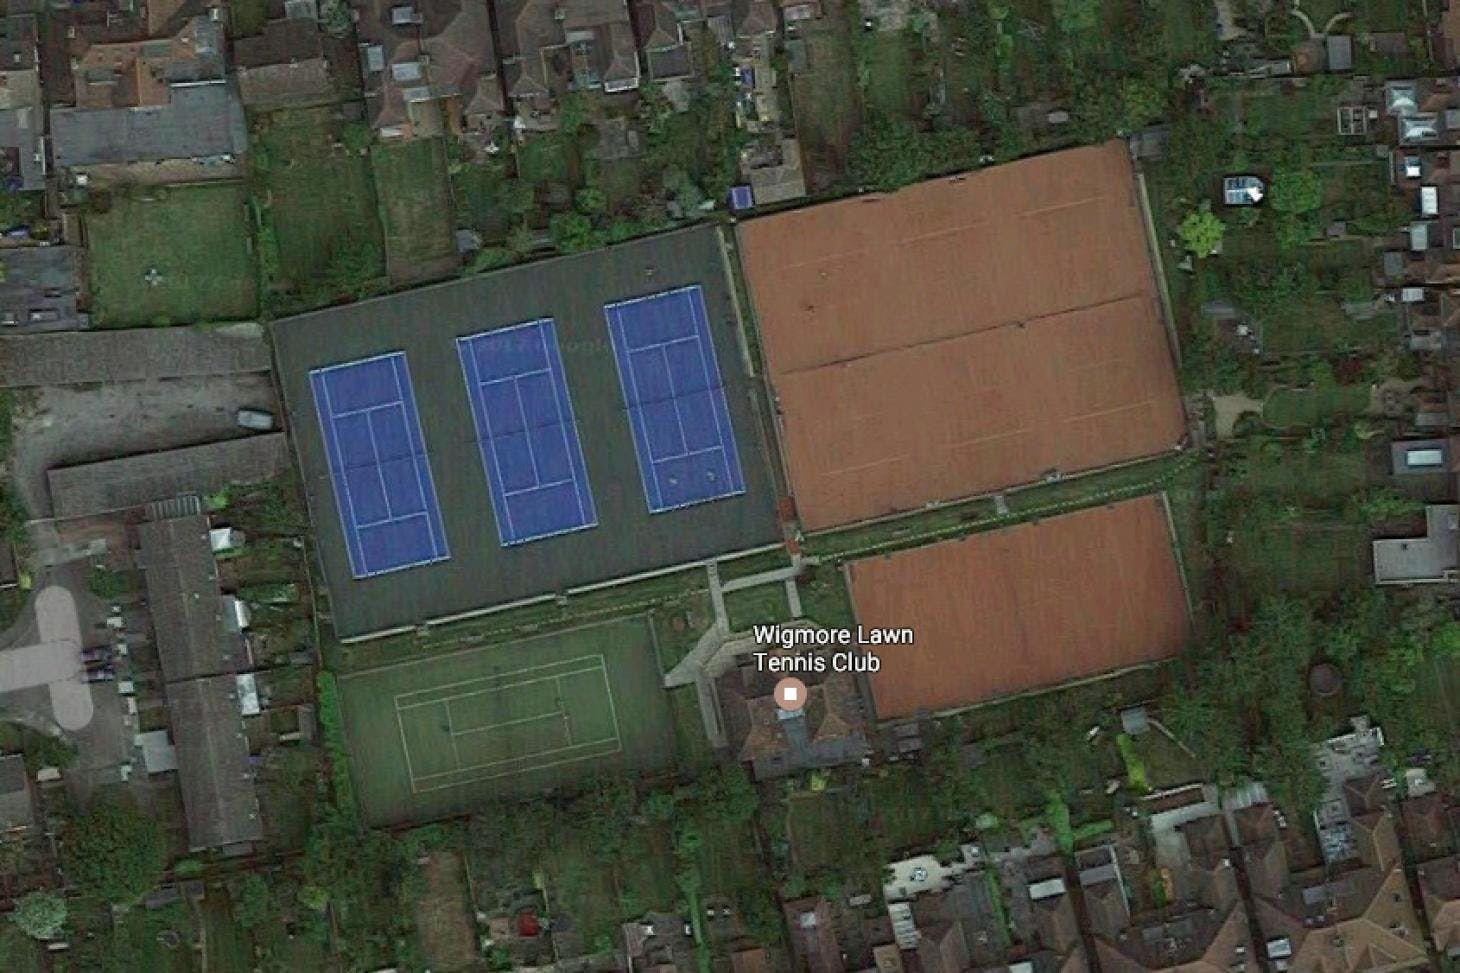 Wigmore Lawn Tennis Club Outdoor | Astroturf tennis court